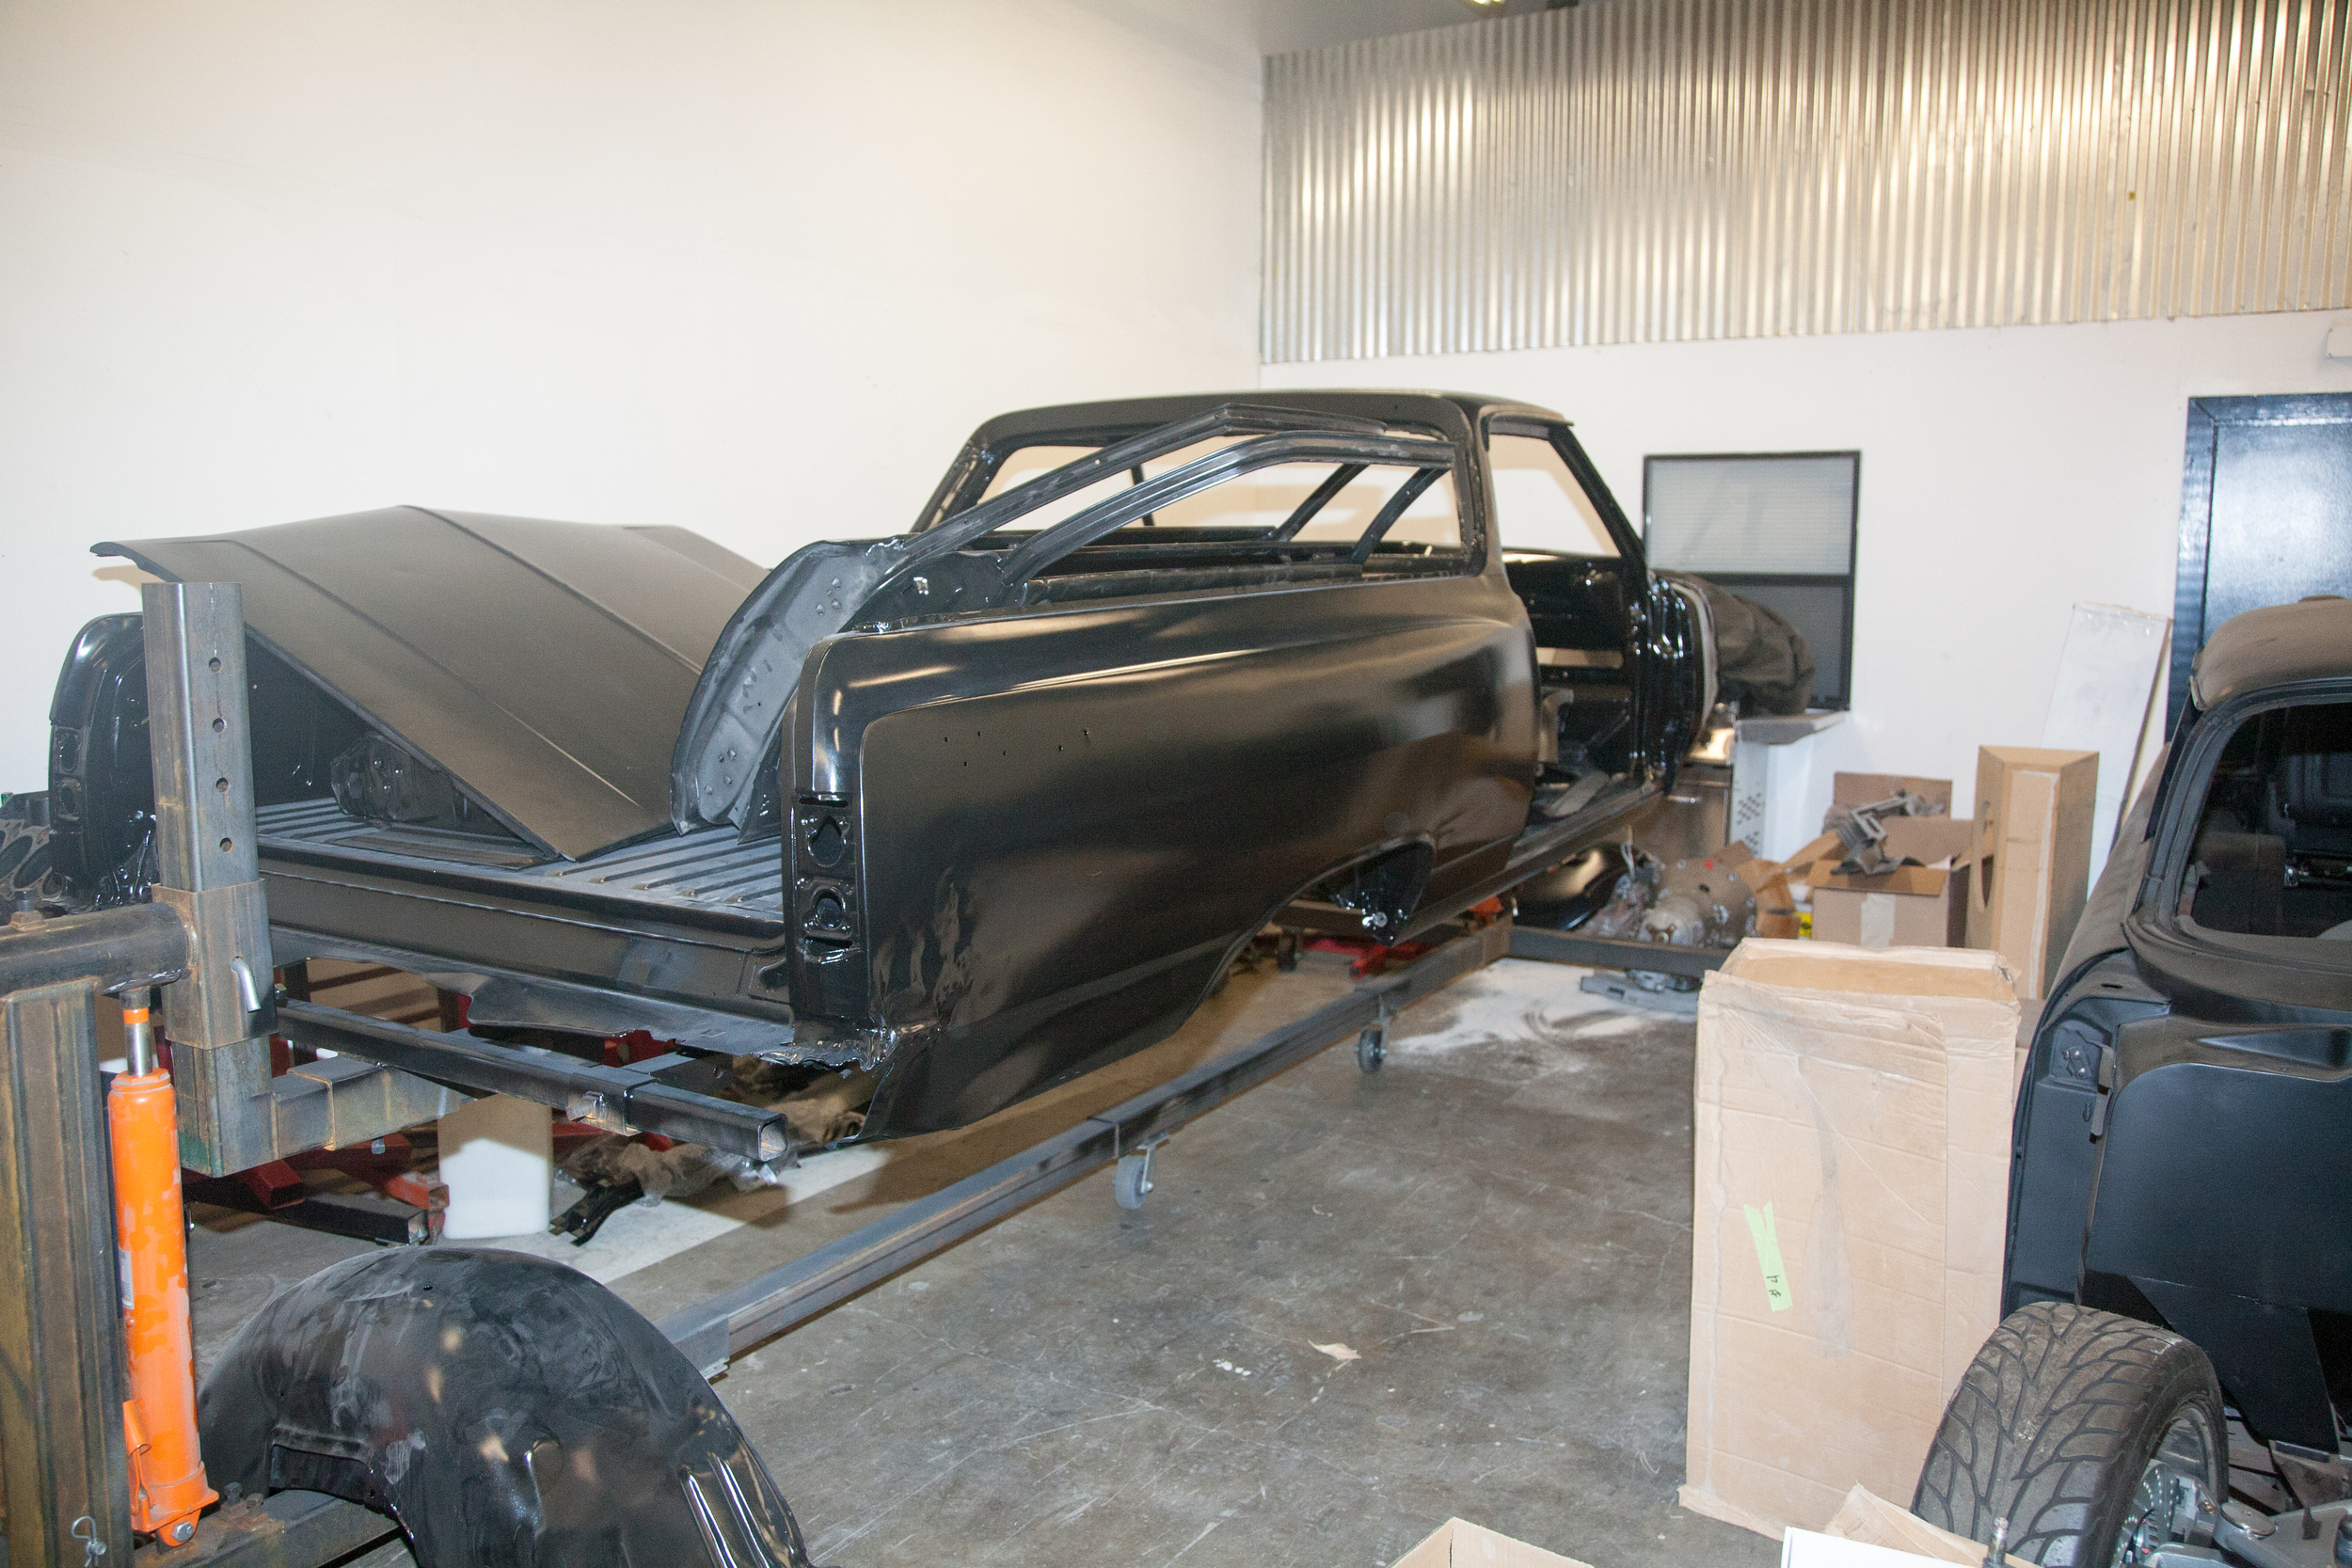 The body has been sand blasted and the rust and damage areas can now be repaired.